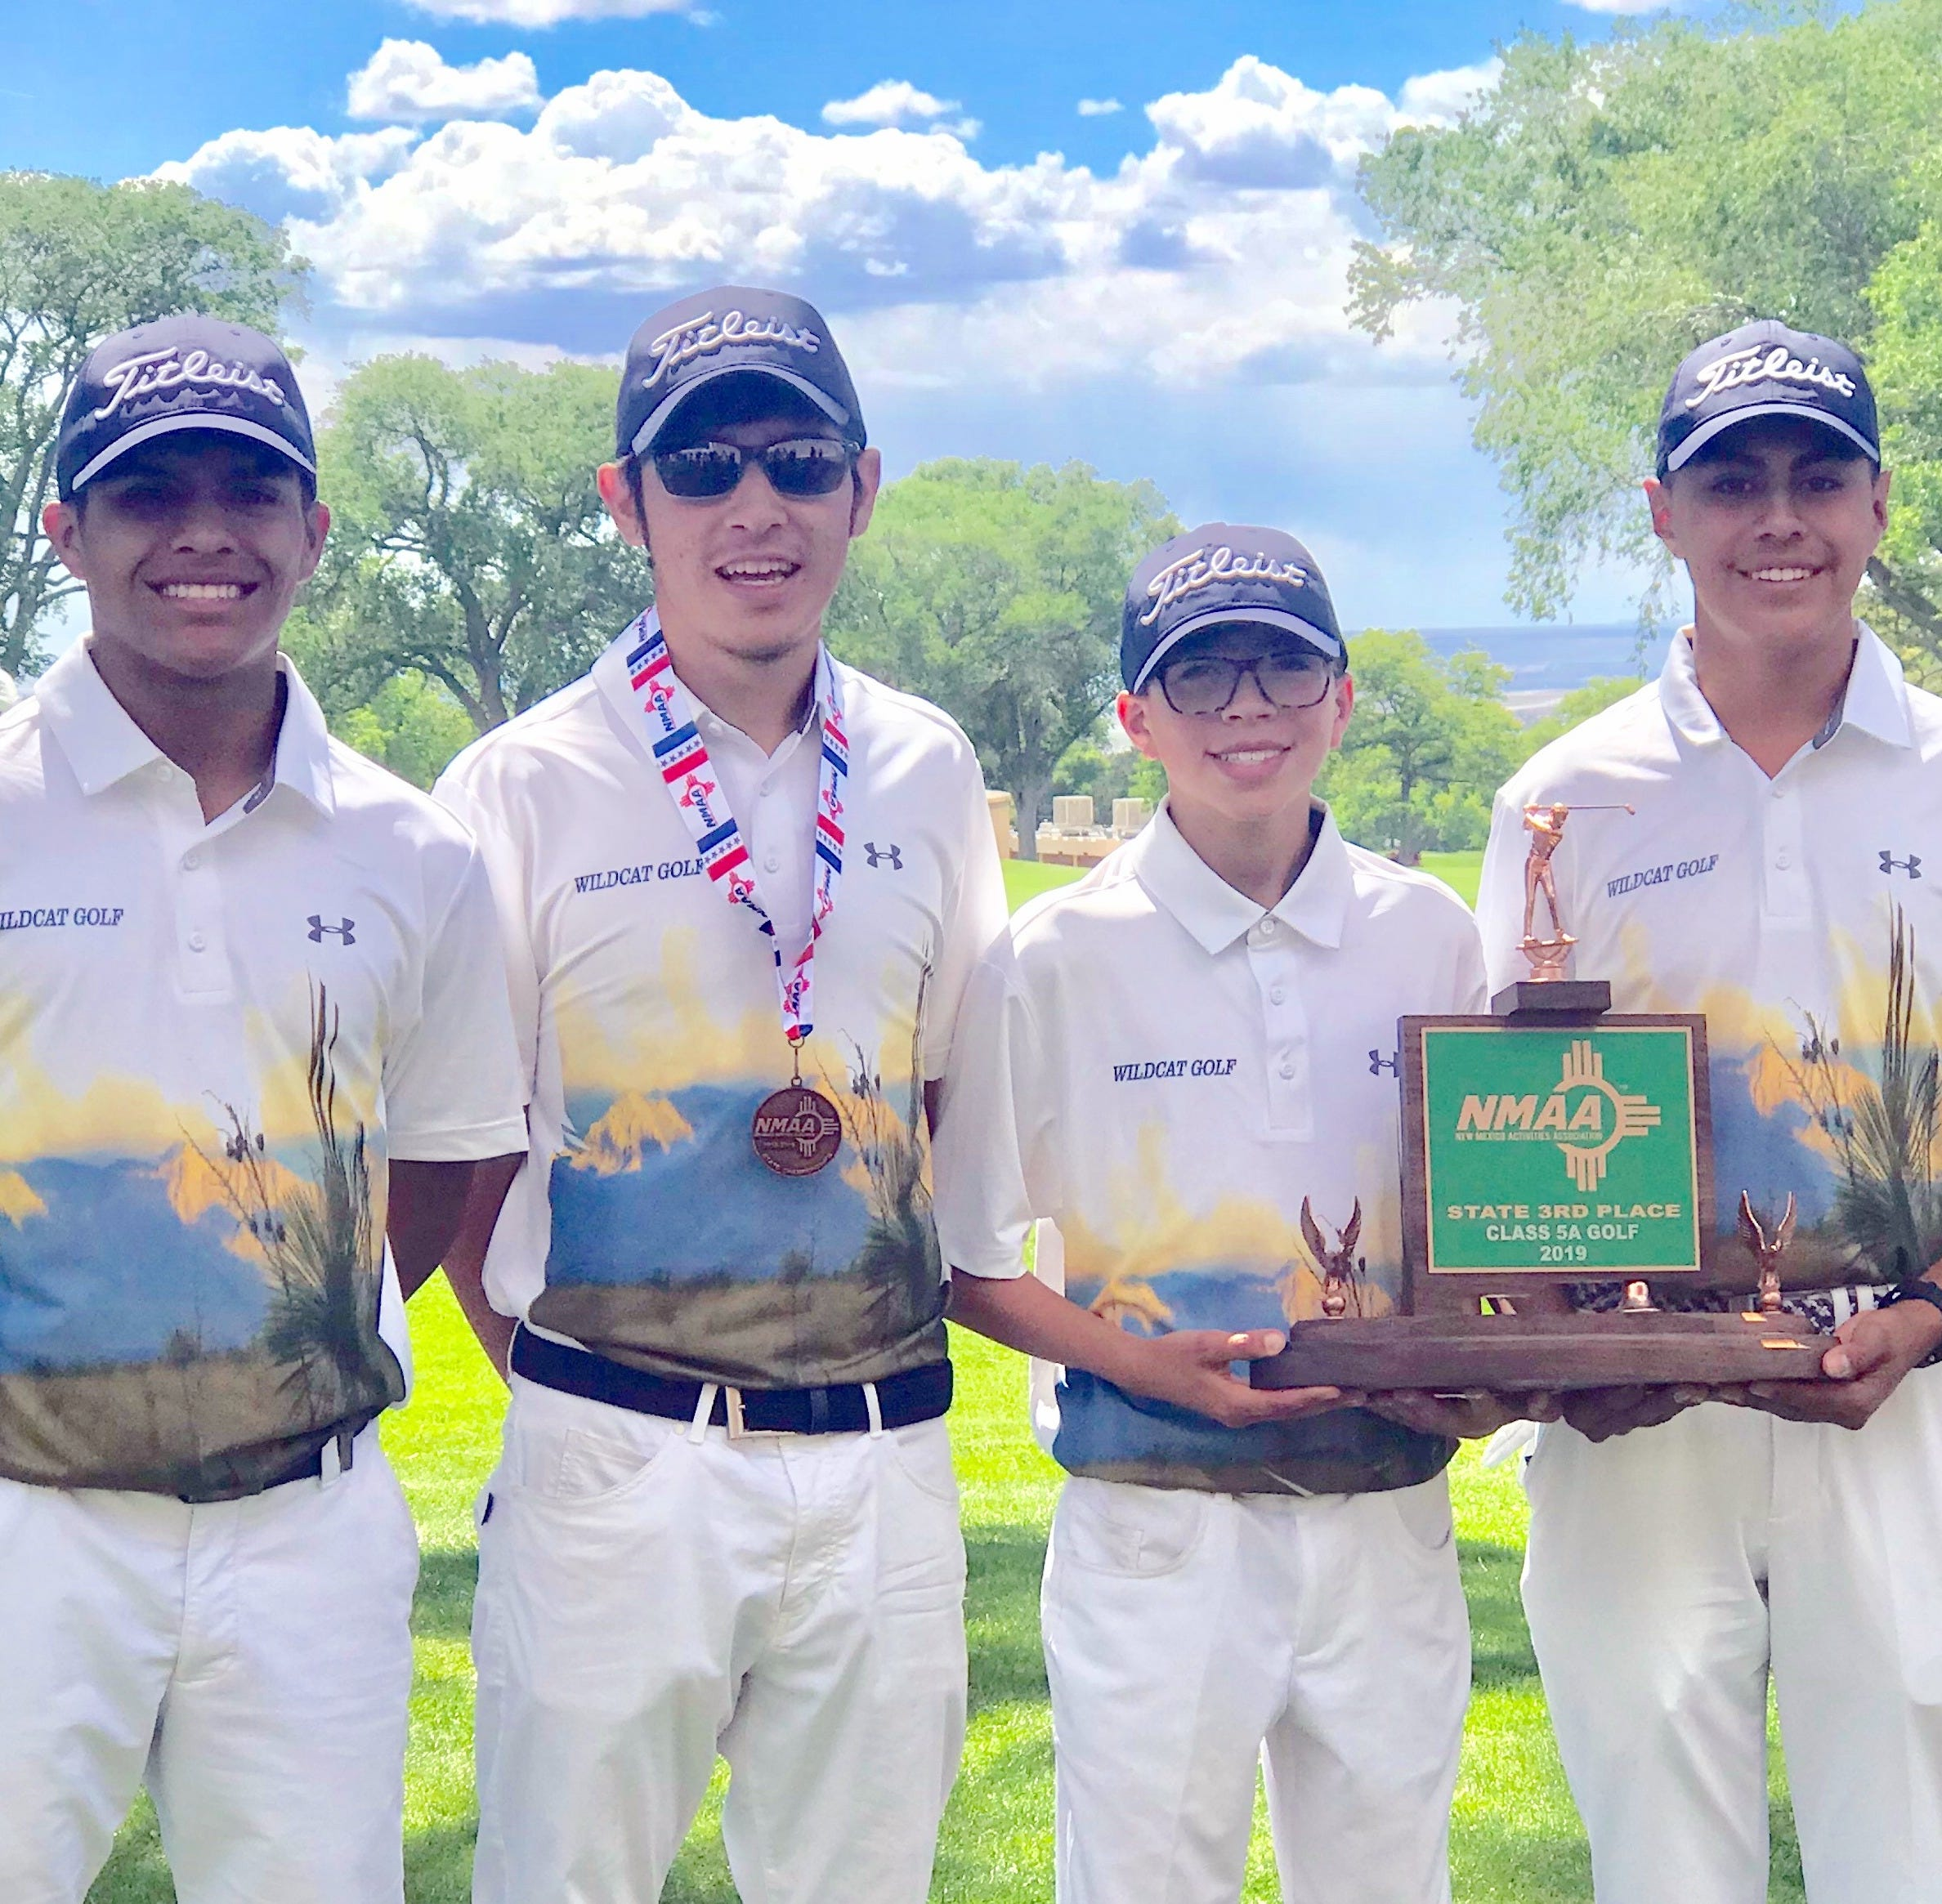 Deming High golf teams bring home green trophies from New Mexico Class 5A state tournament